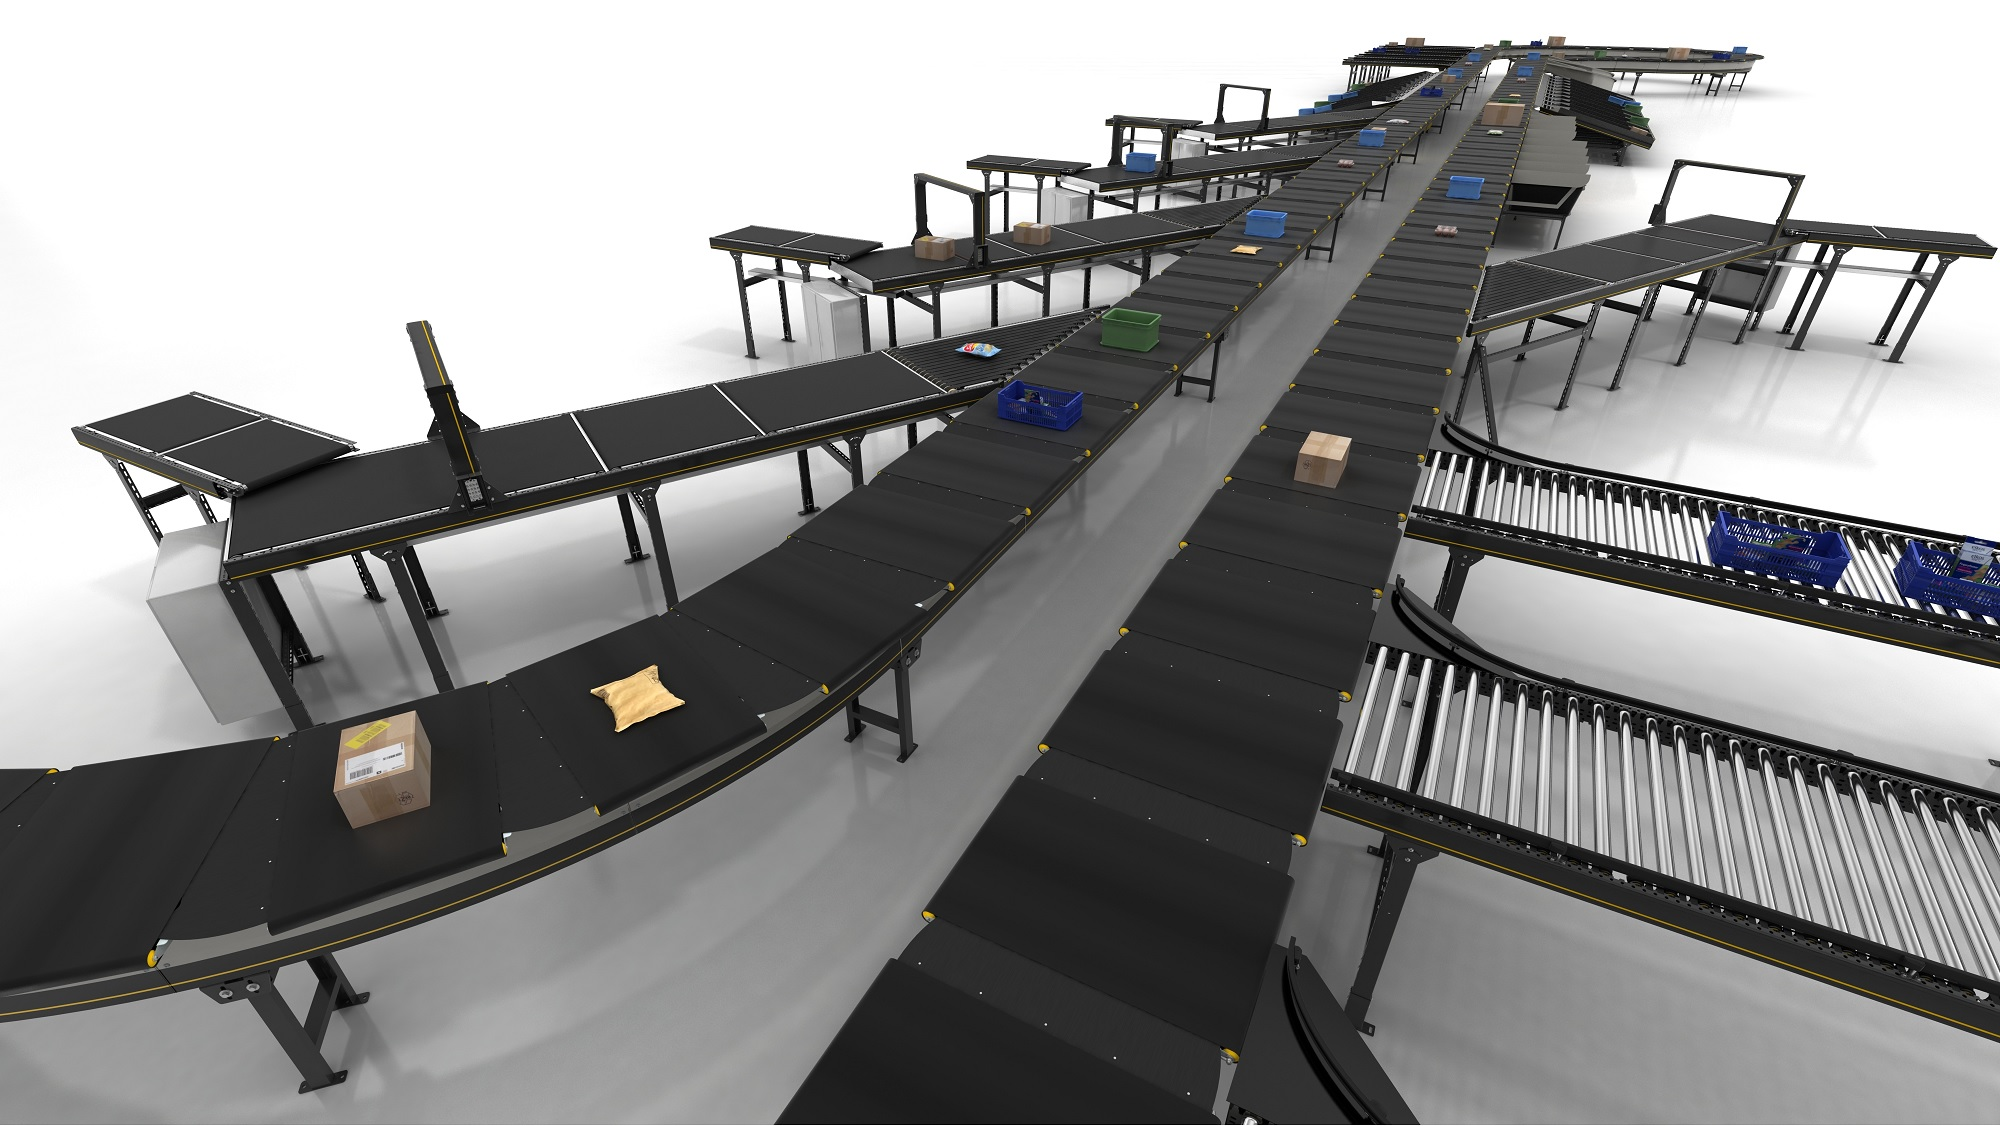 Interroll presents High-Performance Crossbelt Sorter